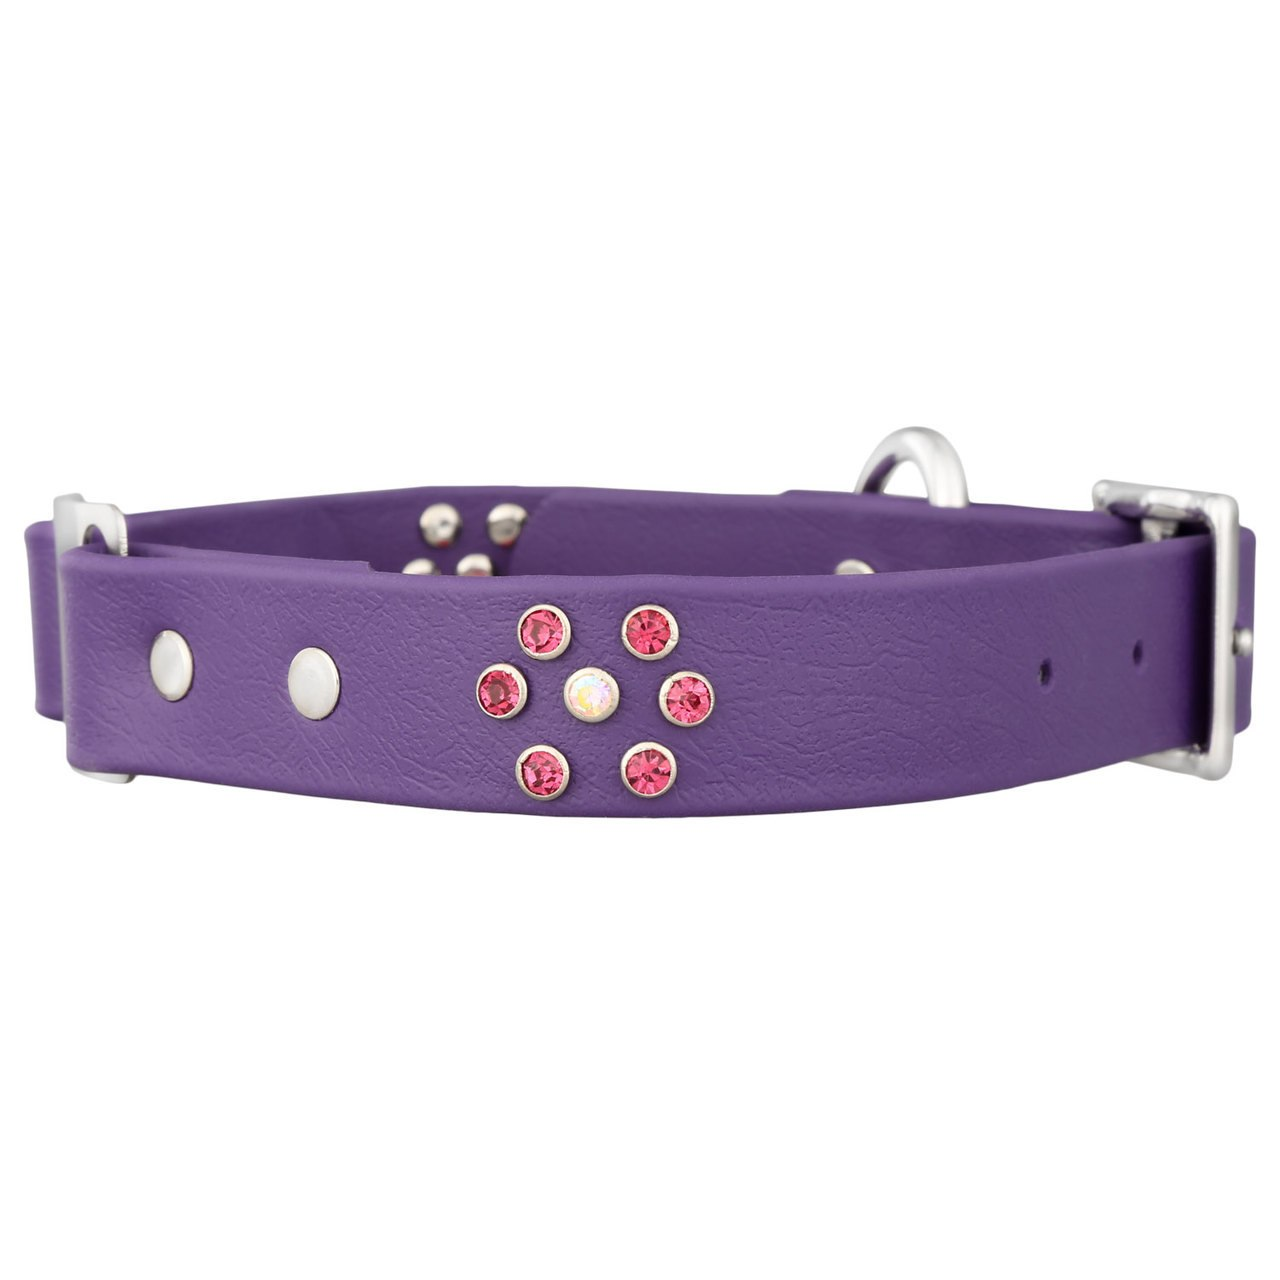 Personalized Jewel Series Soft Grip ScruffTag Dog Collar Purple with Pink Flower